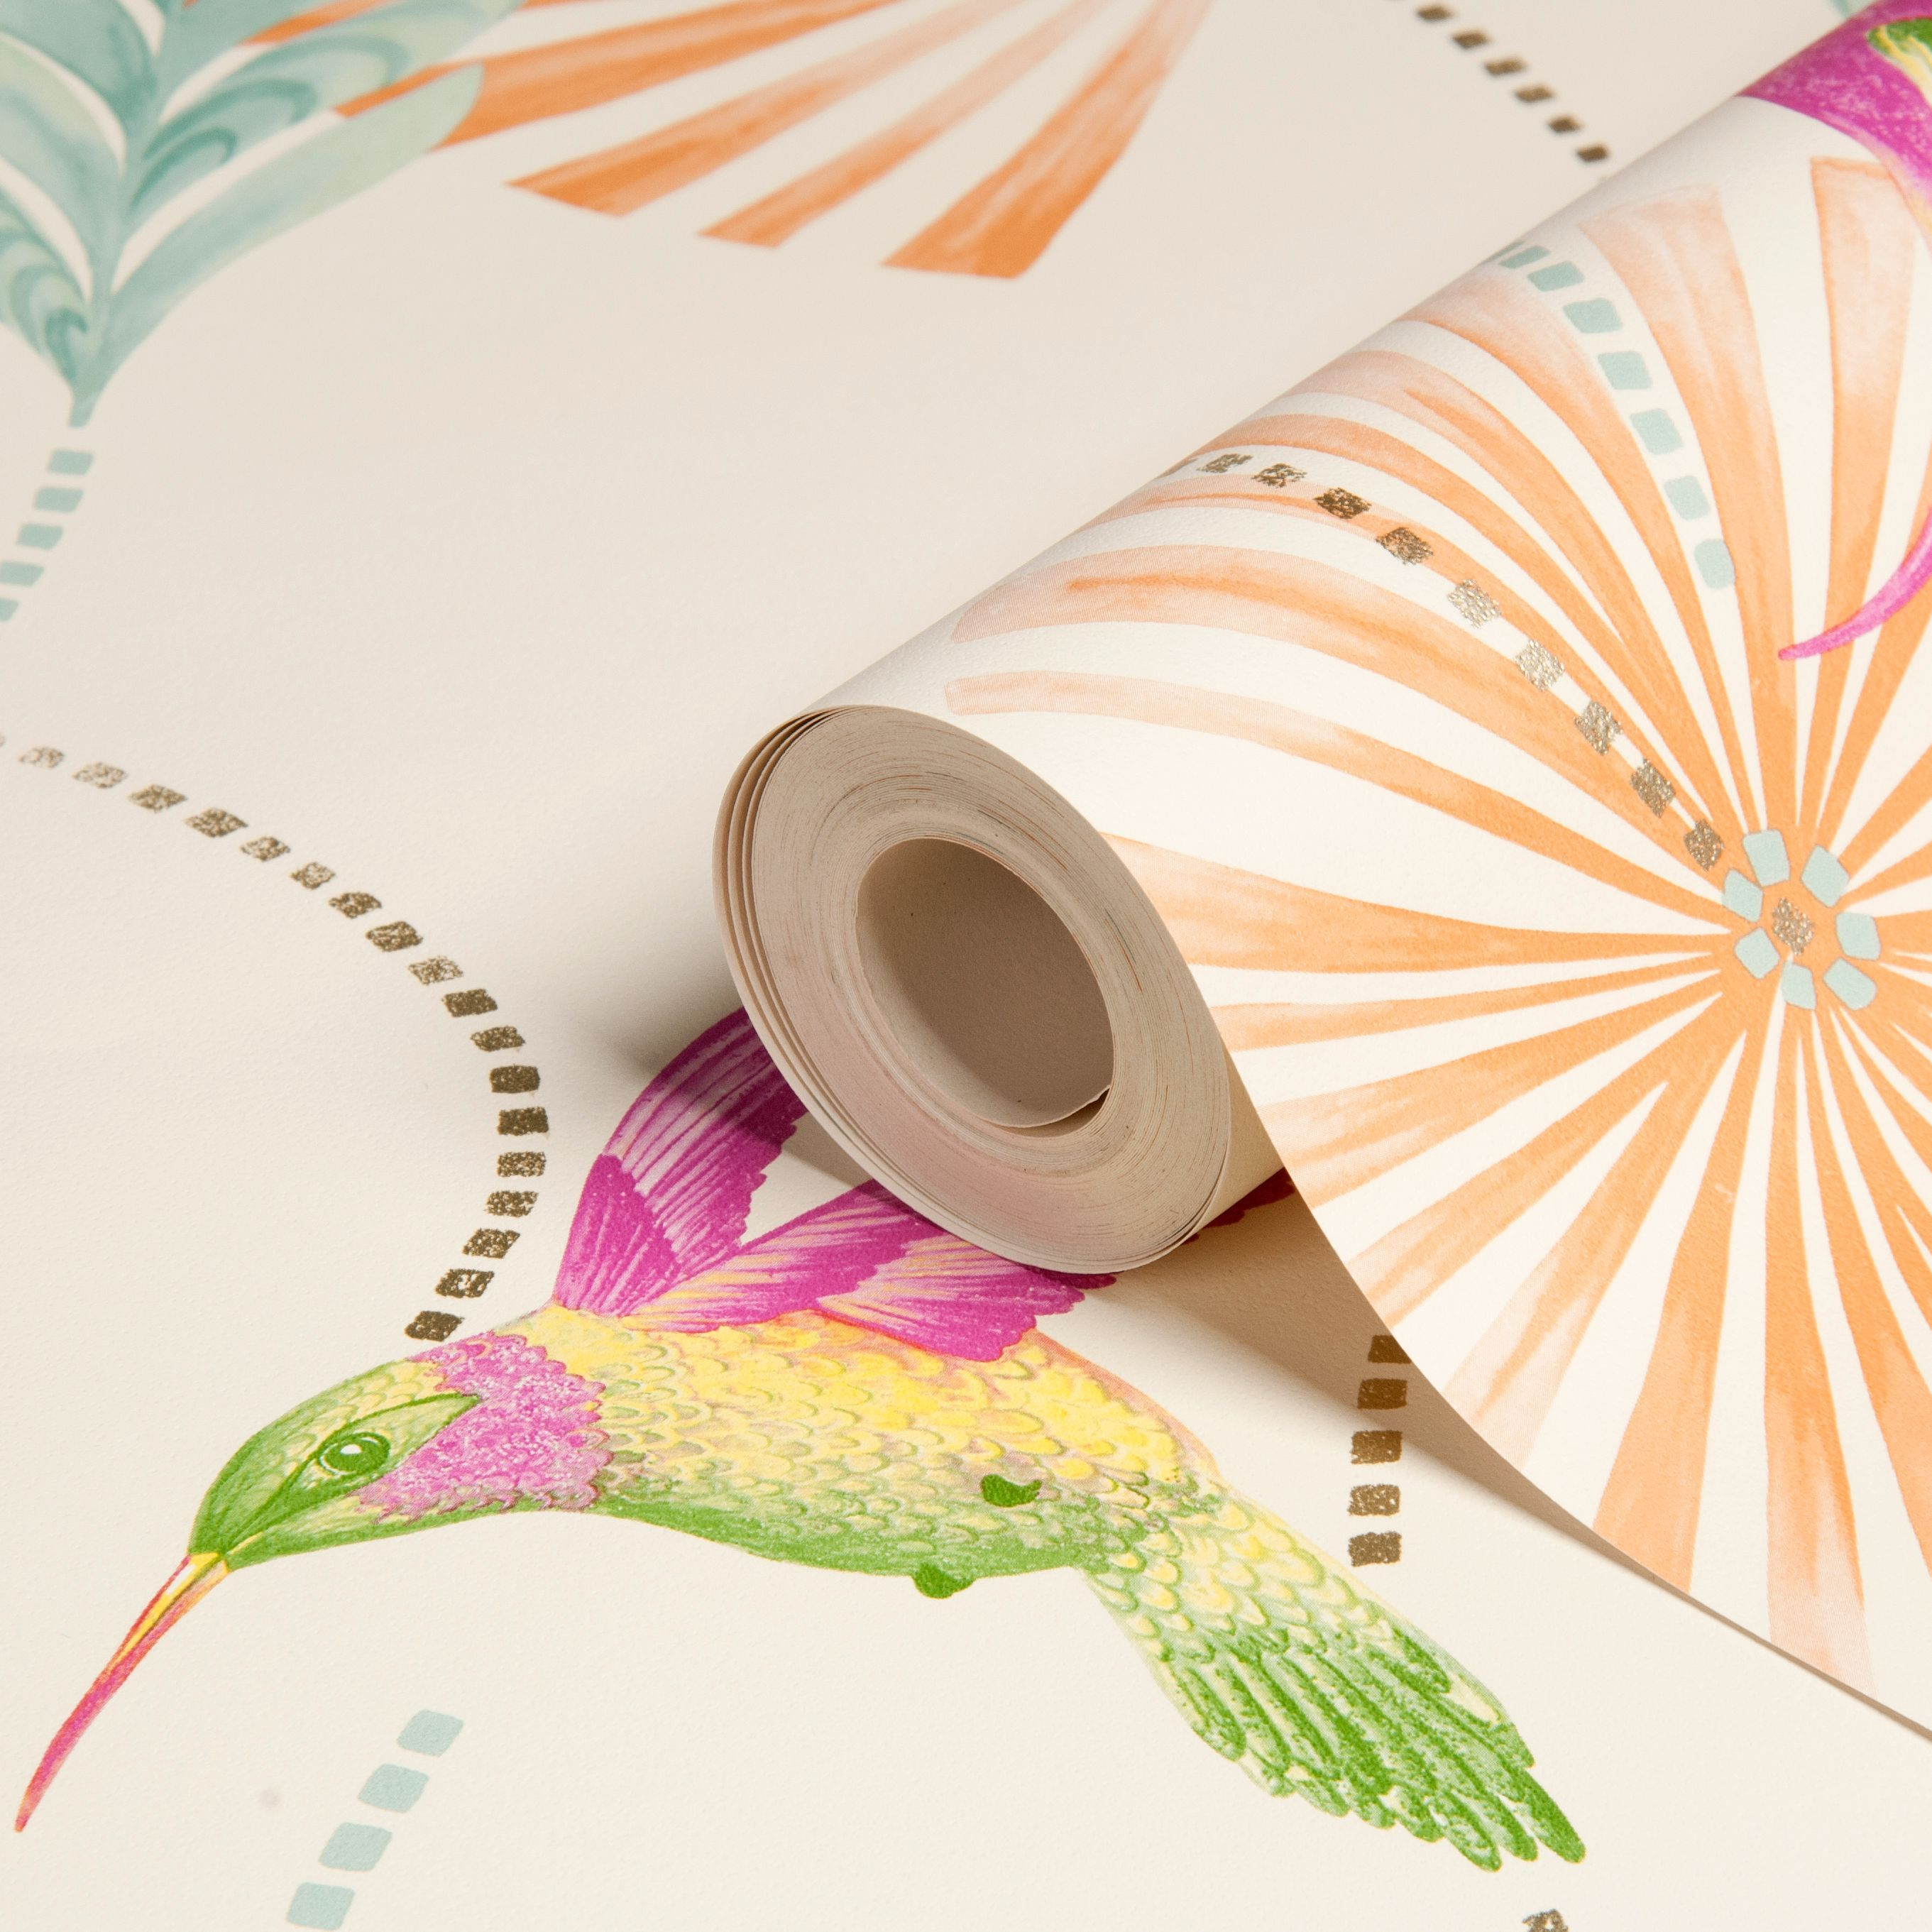 Humming Bird Floral Wallpaper Departments DIY at B&Q